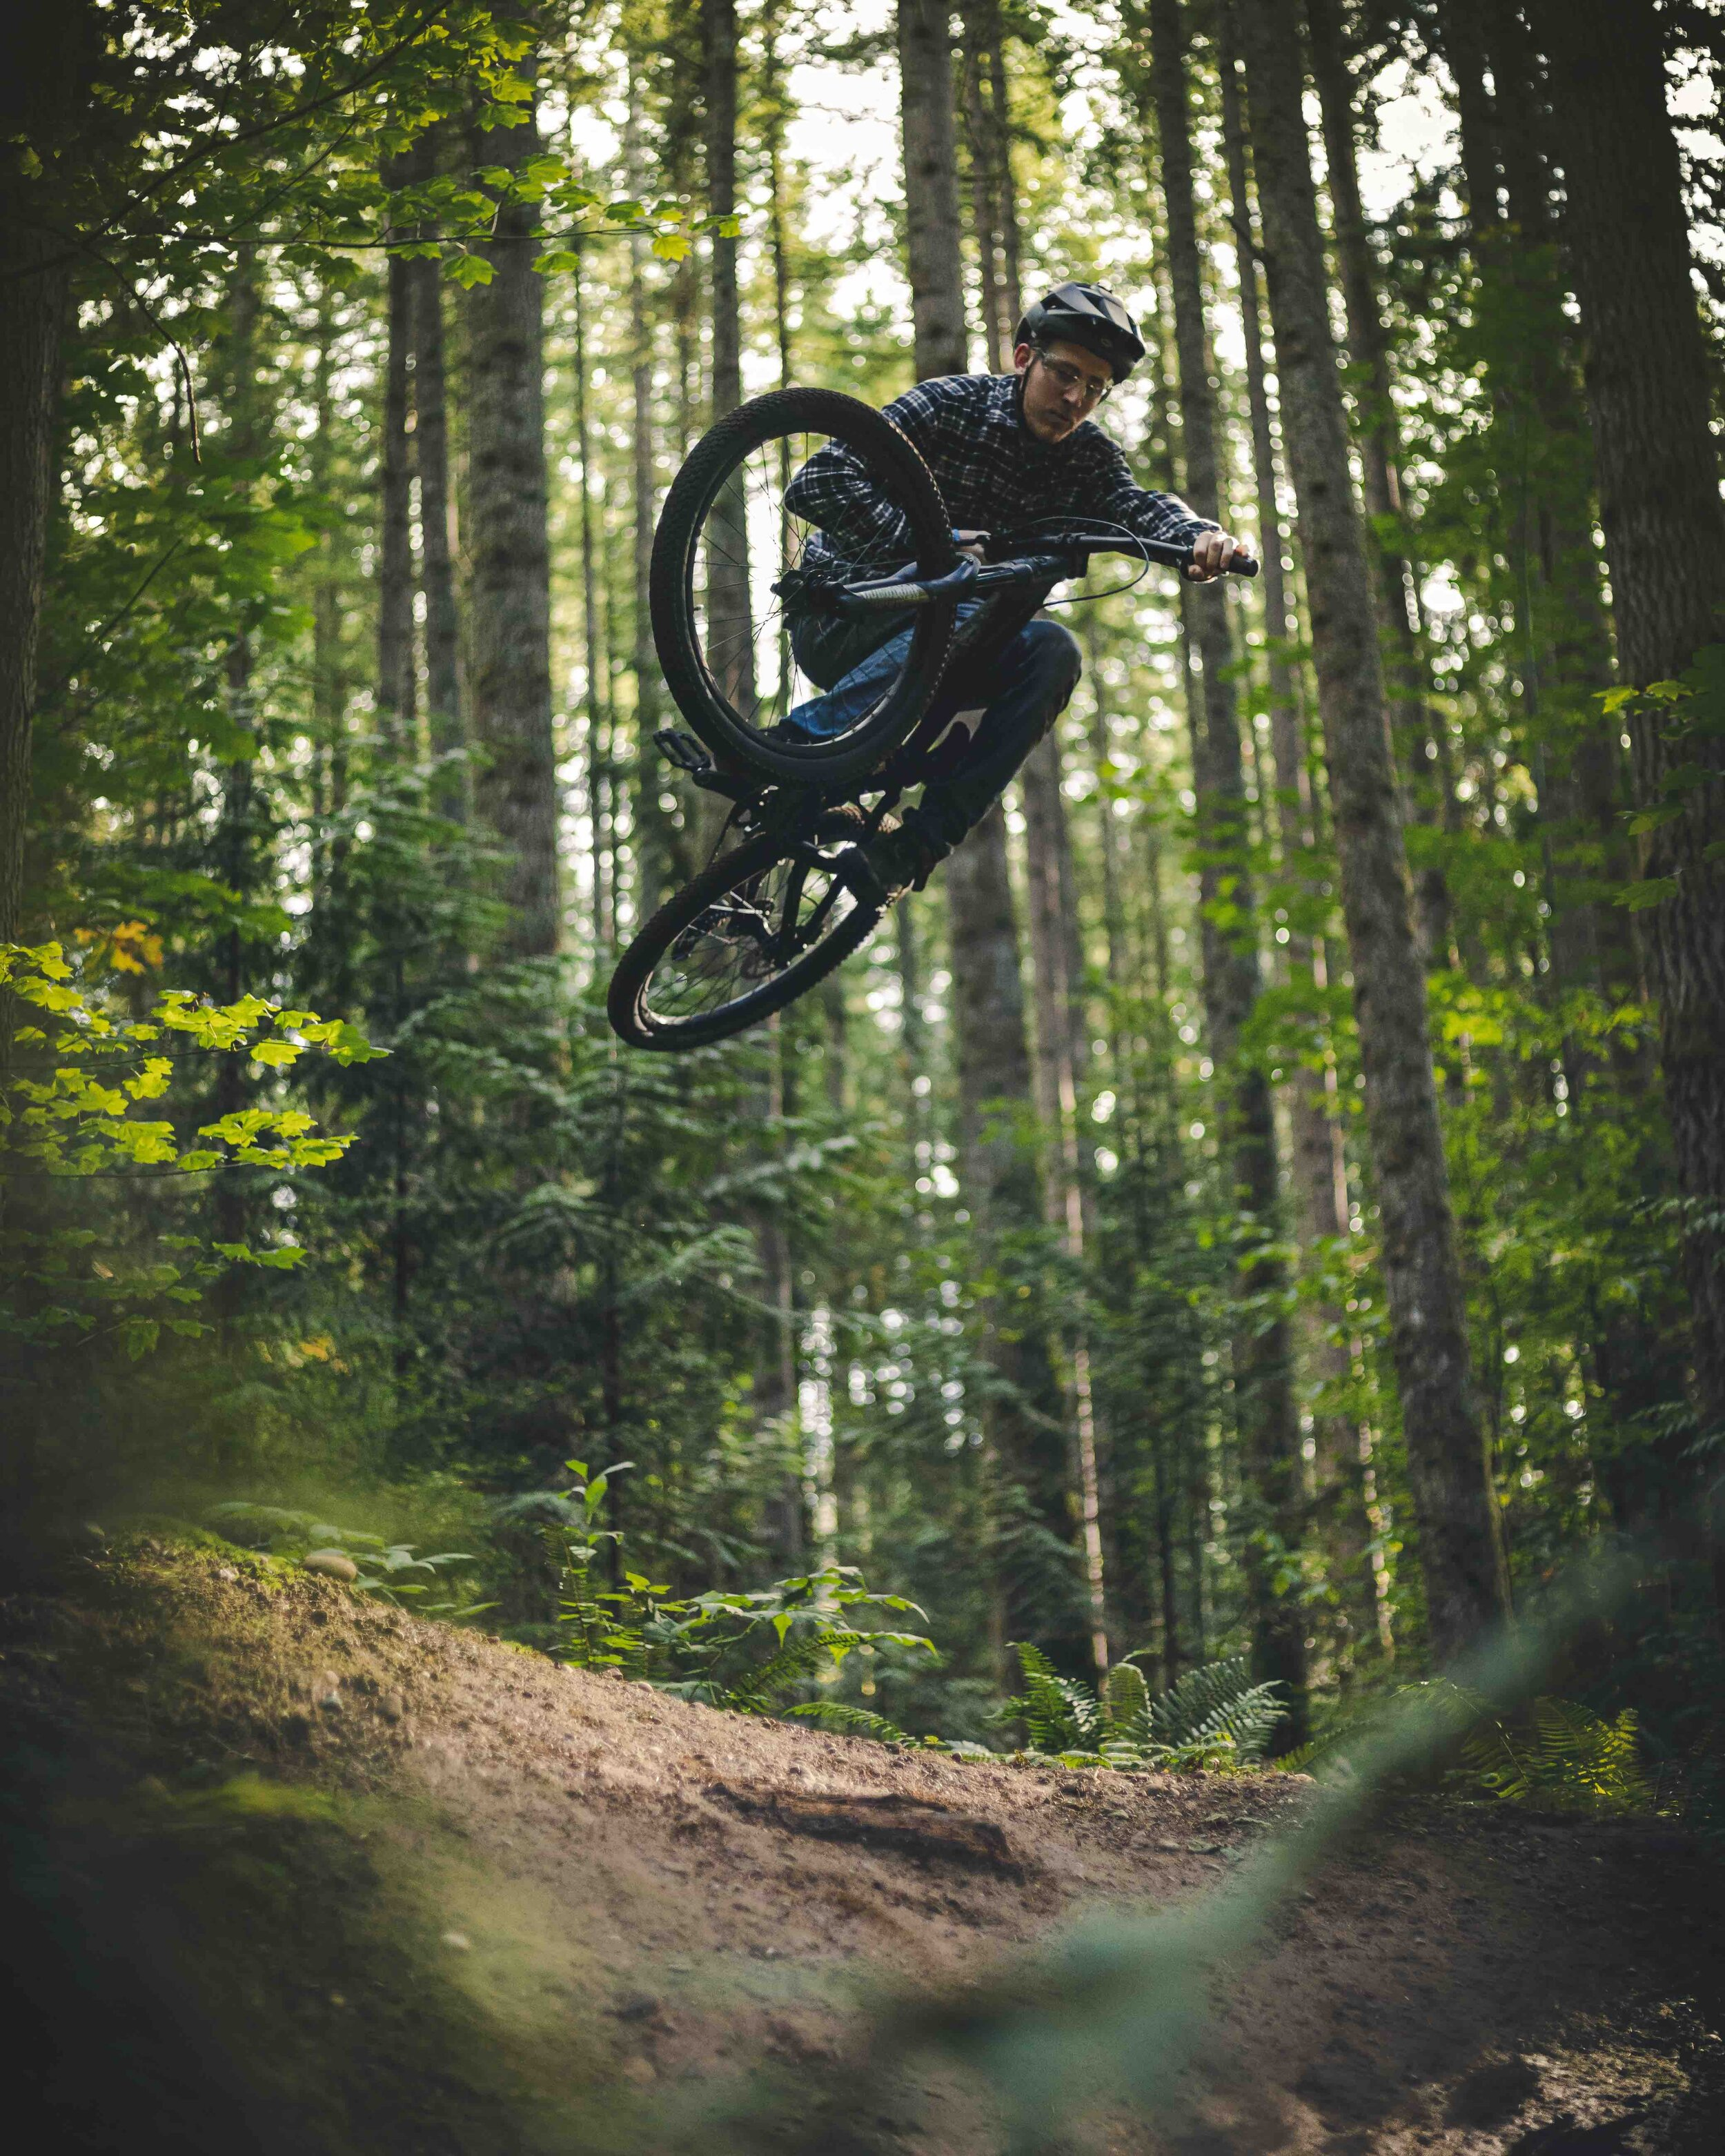 Artistic_Mountain_Bike_Jump_Air_Framed_by_Forest_Foliage.jpeg